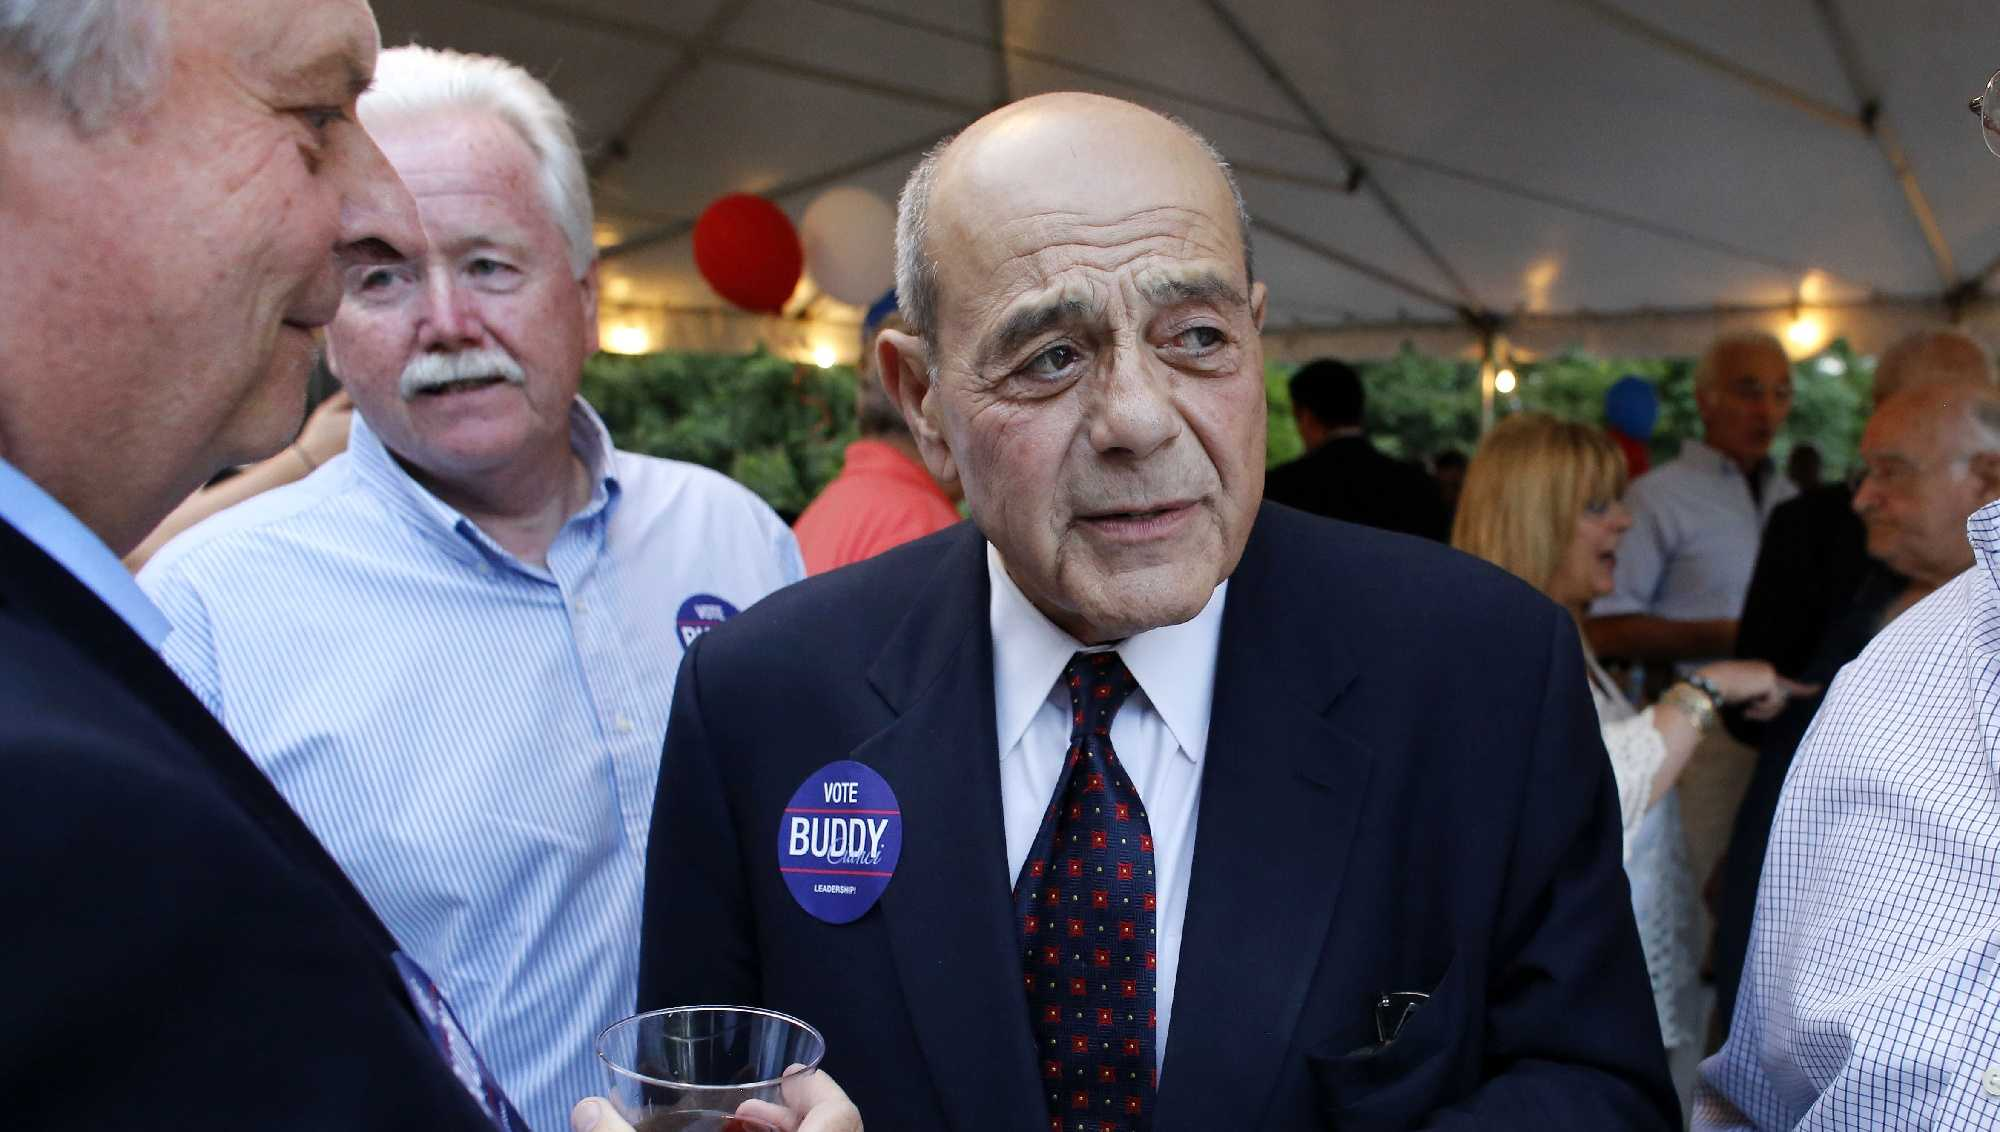 Former Providence Mayor Buddy Cianci died Jan. 27 at the age of 74. He is credited with revitalizing Providence and was beloved despite a stint in prison for corruption.